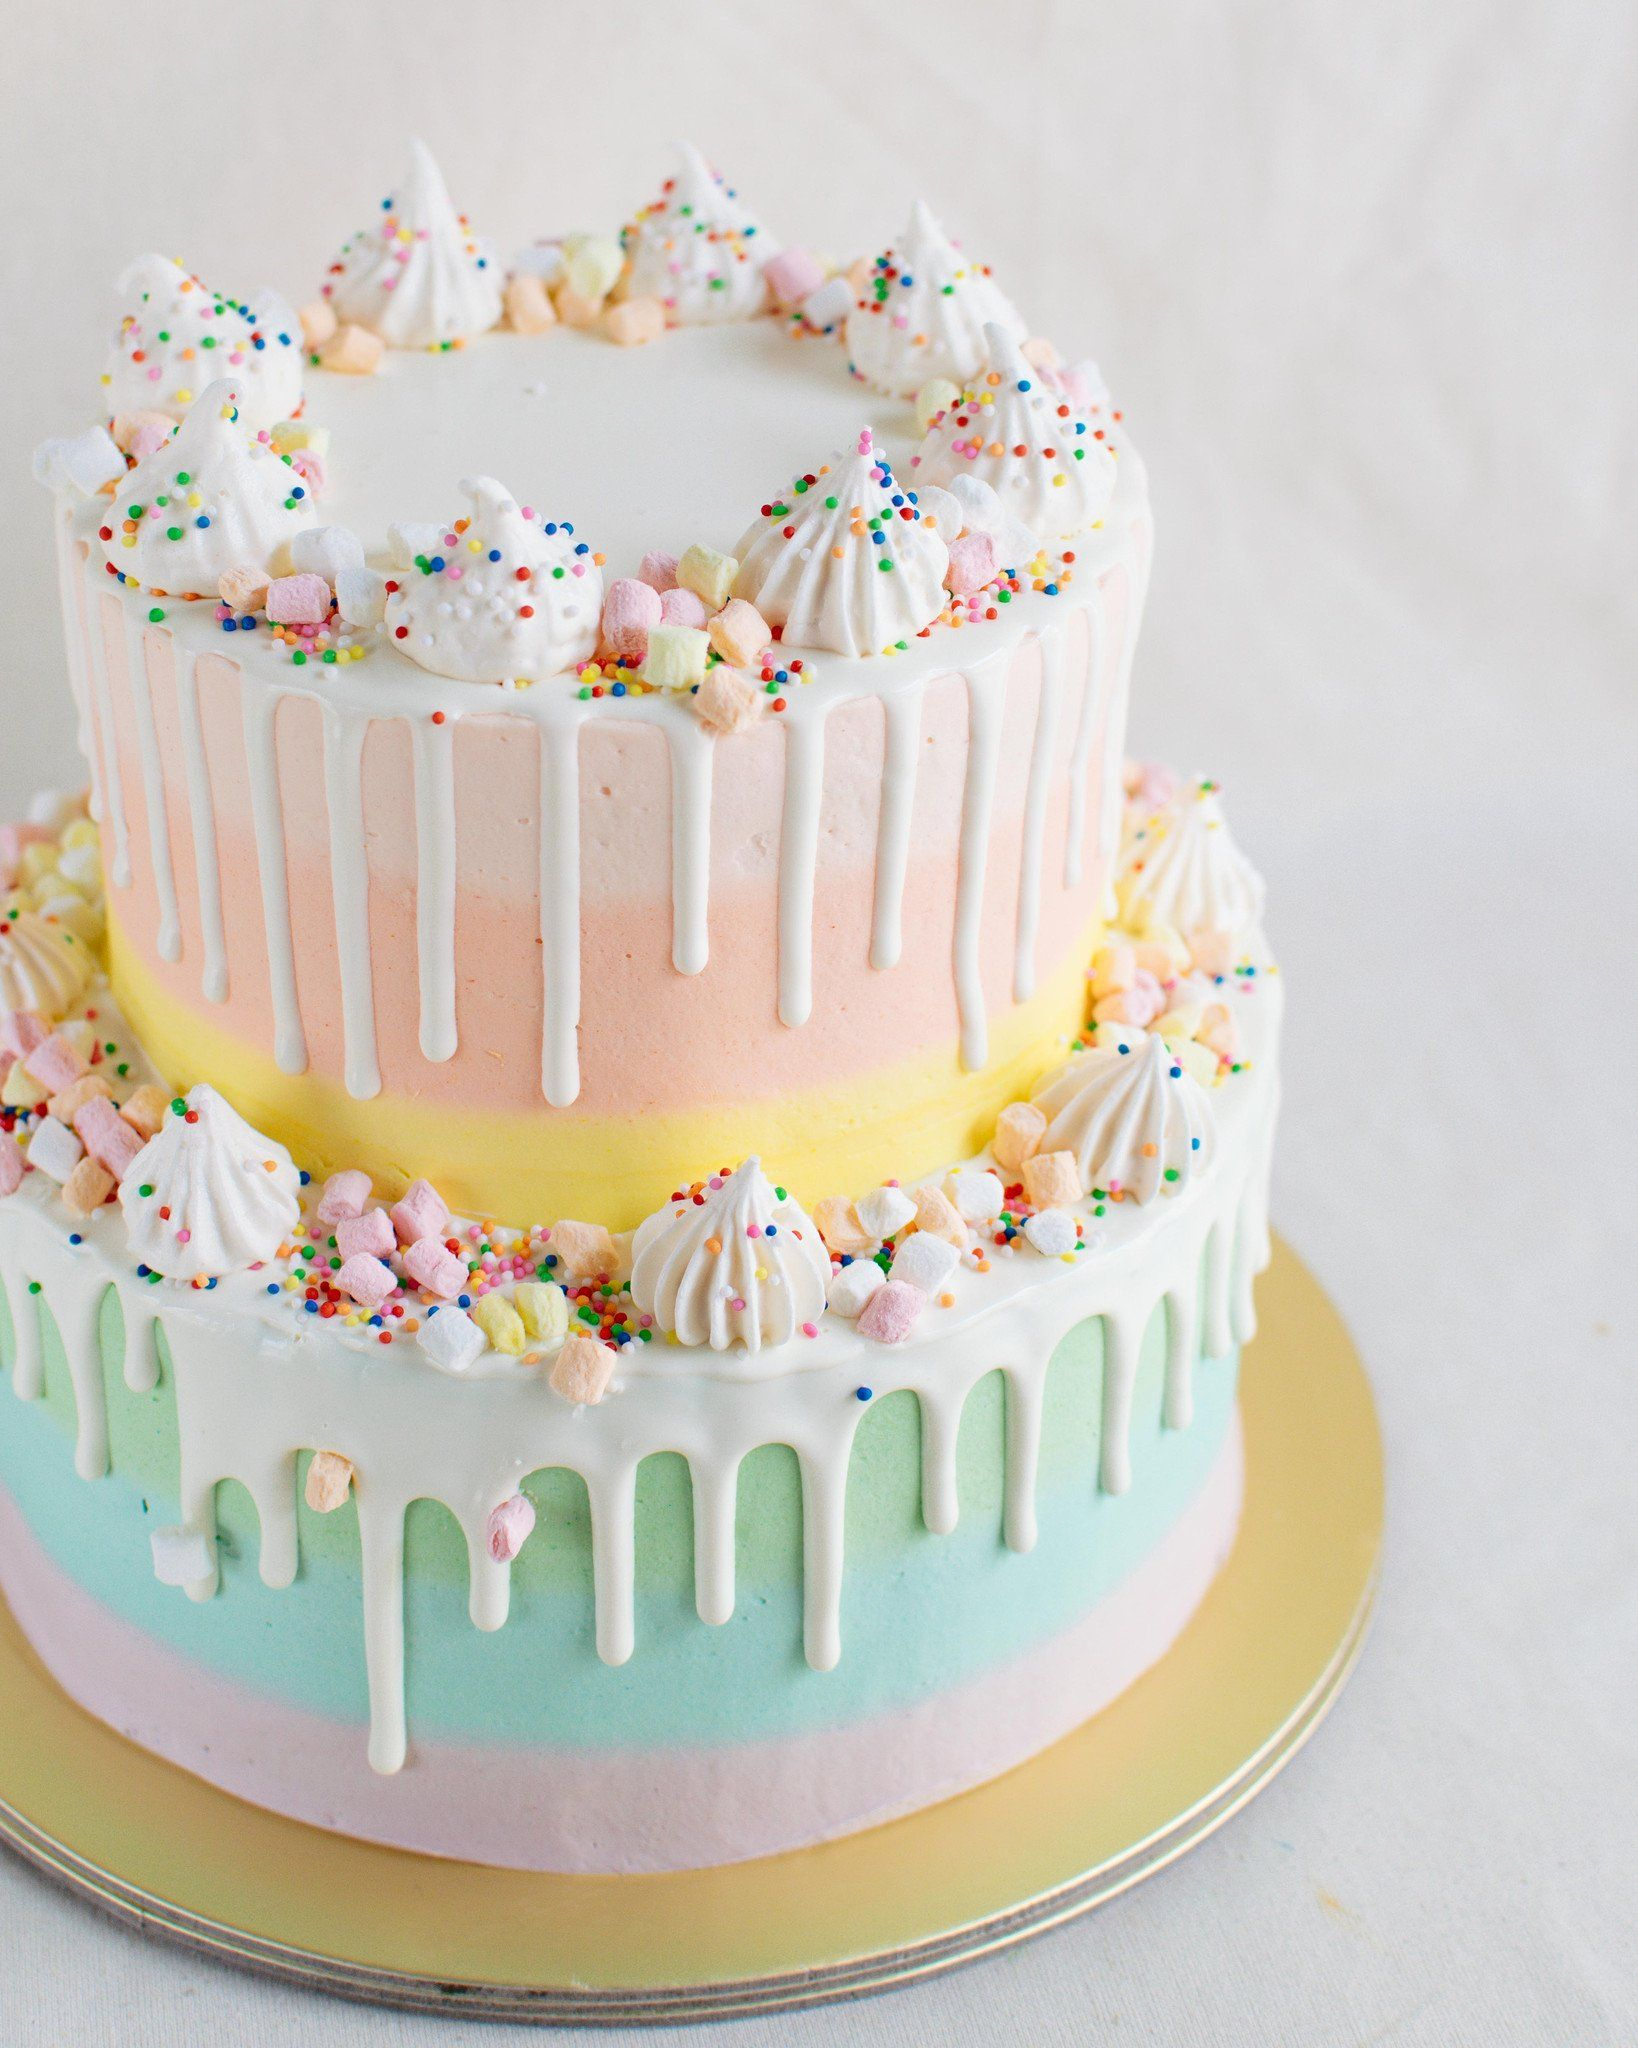 Two Tier Pastel Rainbow Drizzle Cake Custom Bakes By Edith